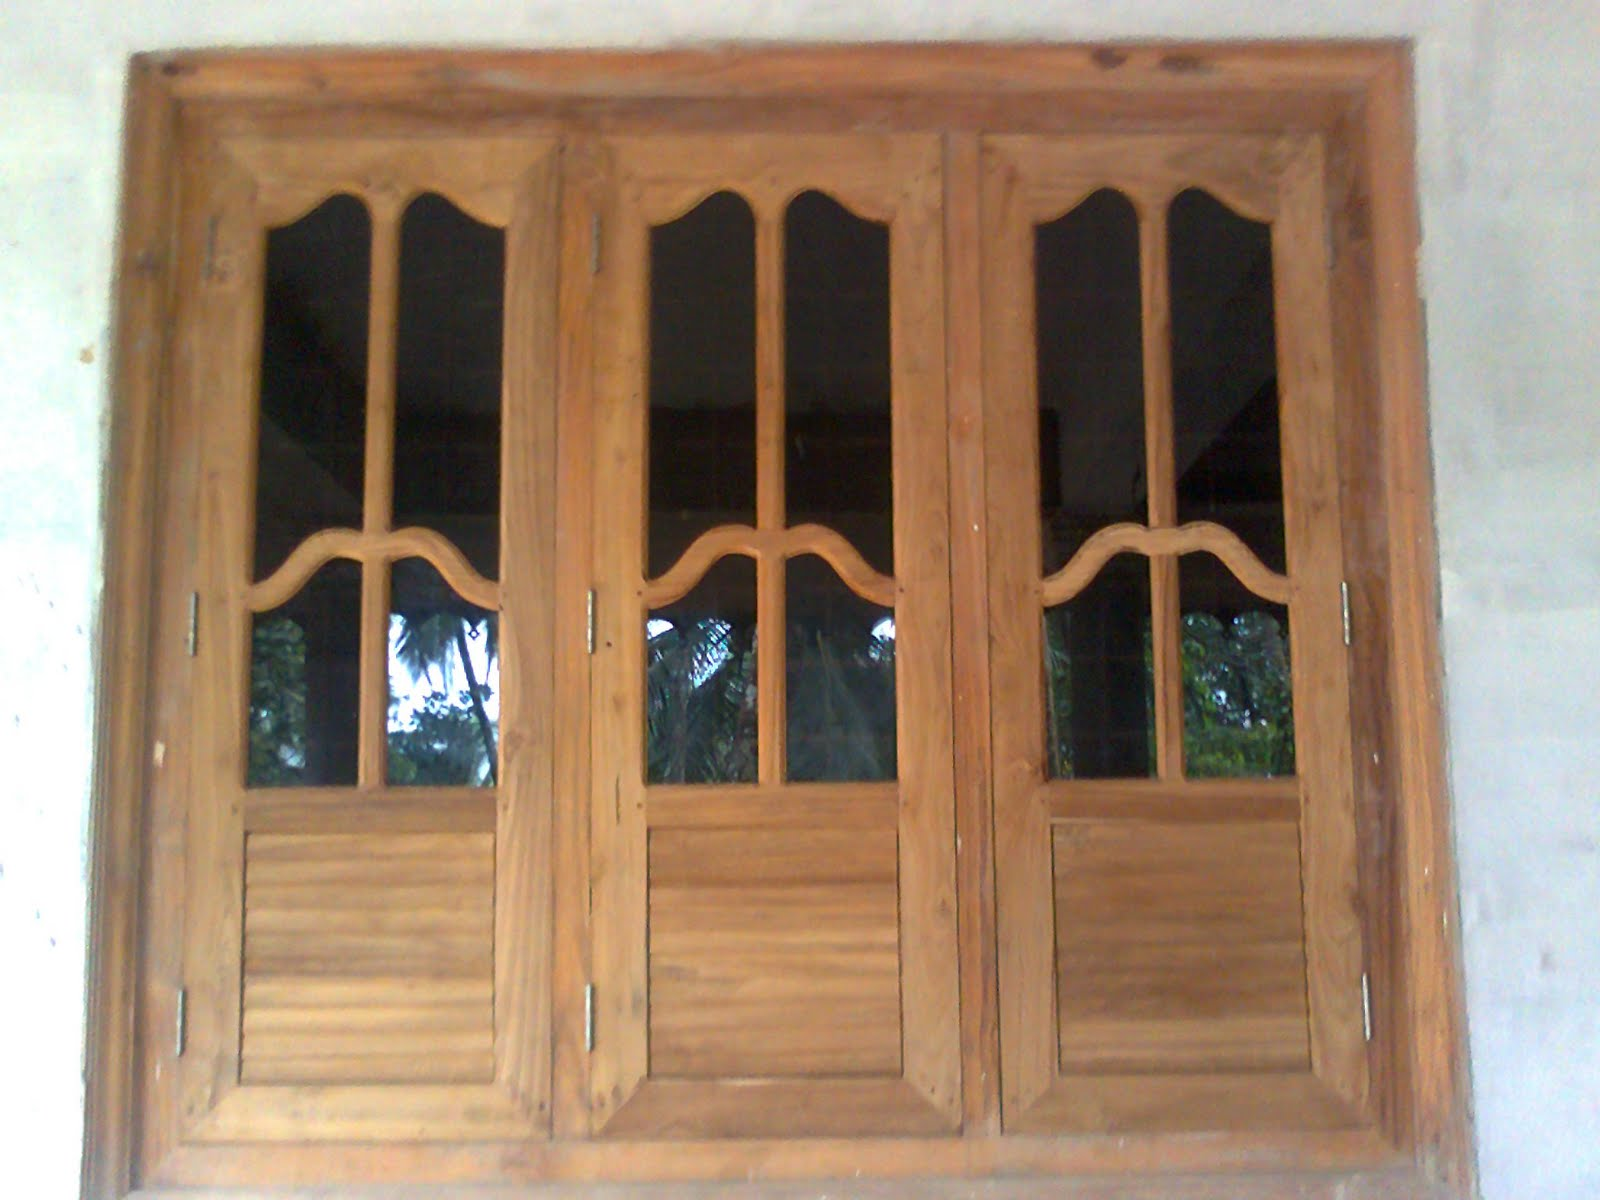 Bavas wood works wooden window doors simple designs for Wooden windows